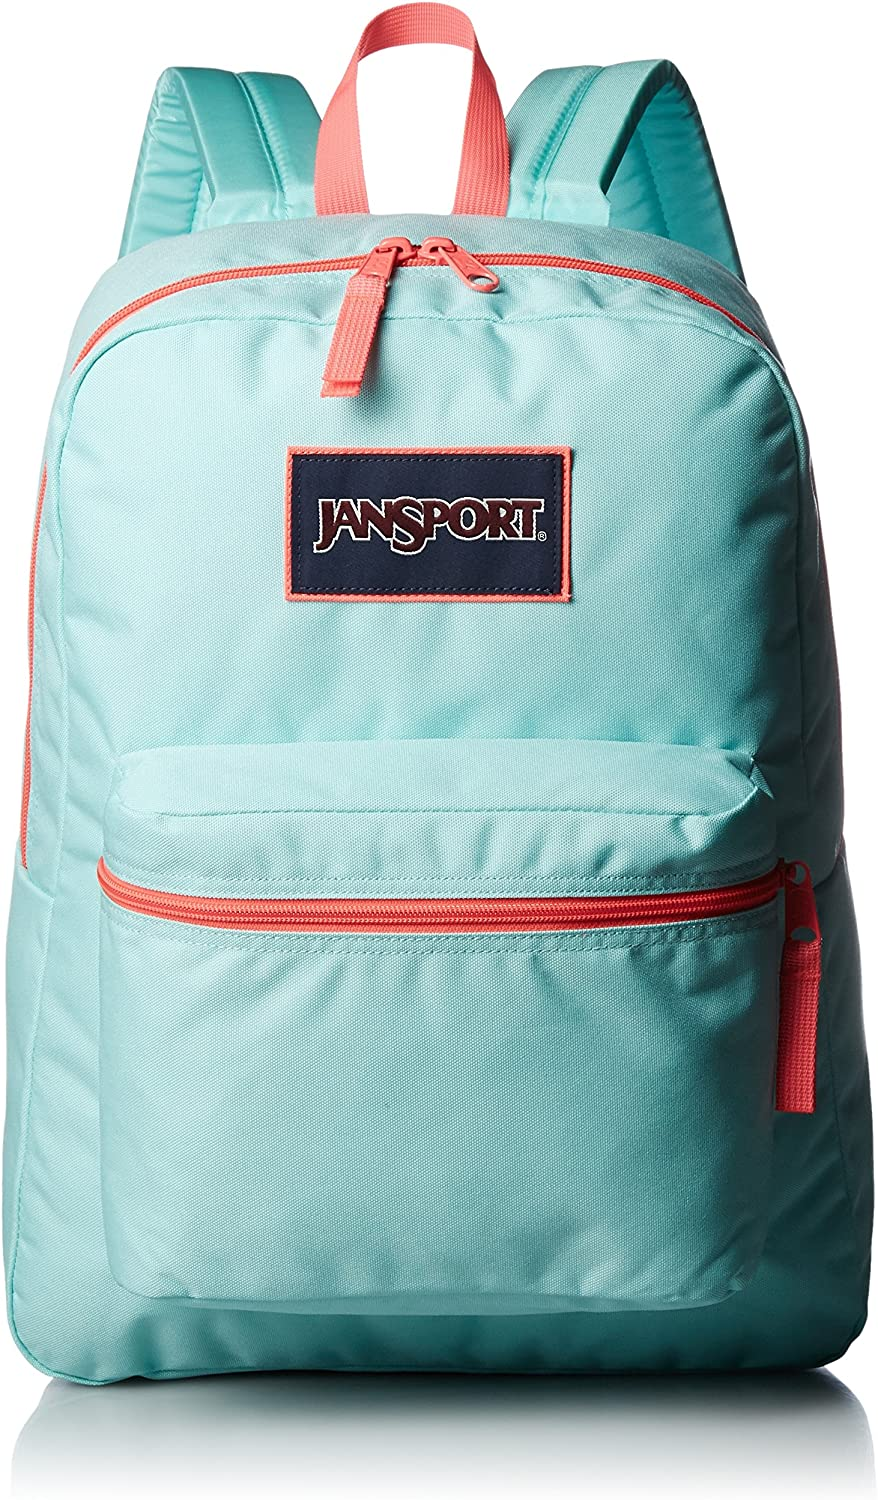 JanSport Overexposed Backpack AQUA DASH FLUORESCENT RED